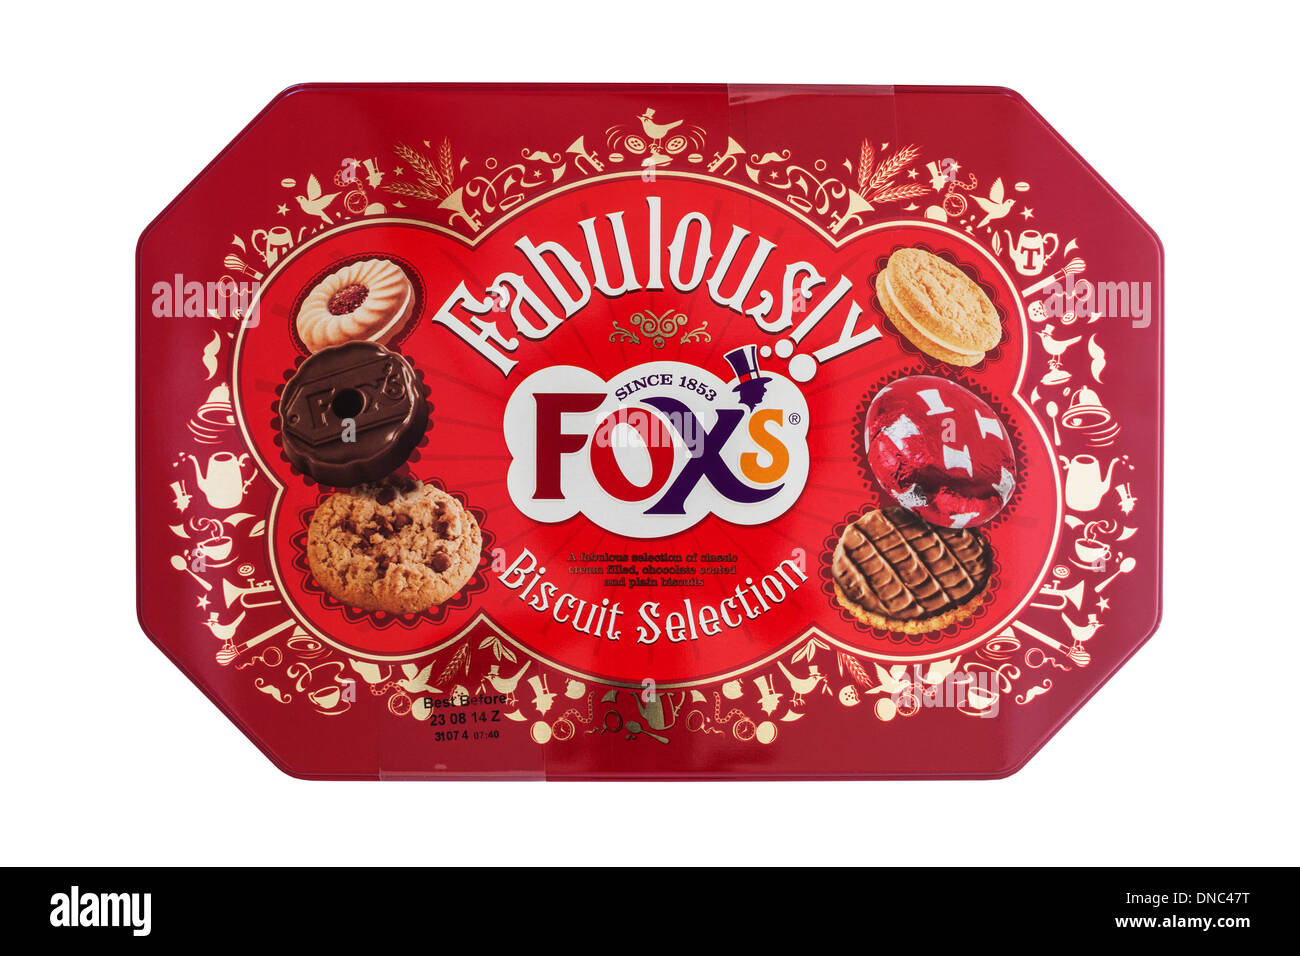 A tin of Fox's biscuit selection biscuits on a white background - Stock Image